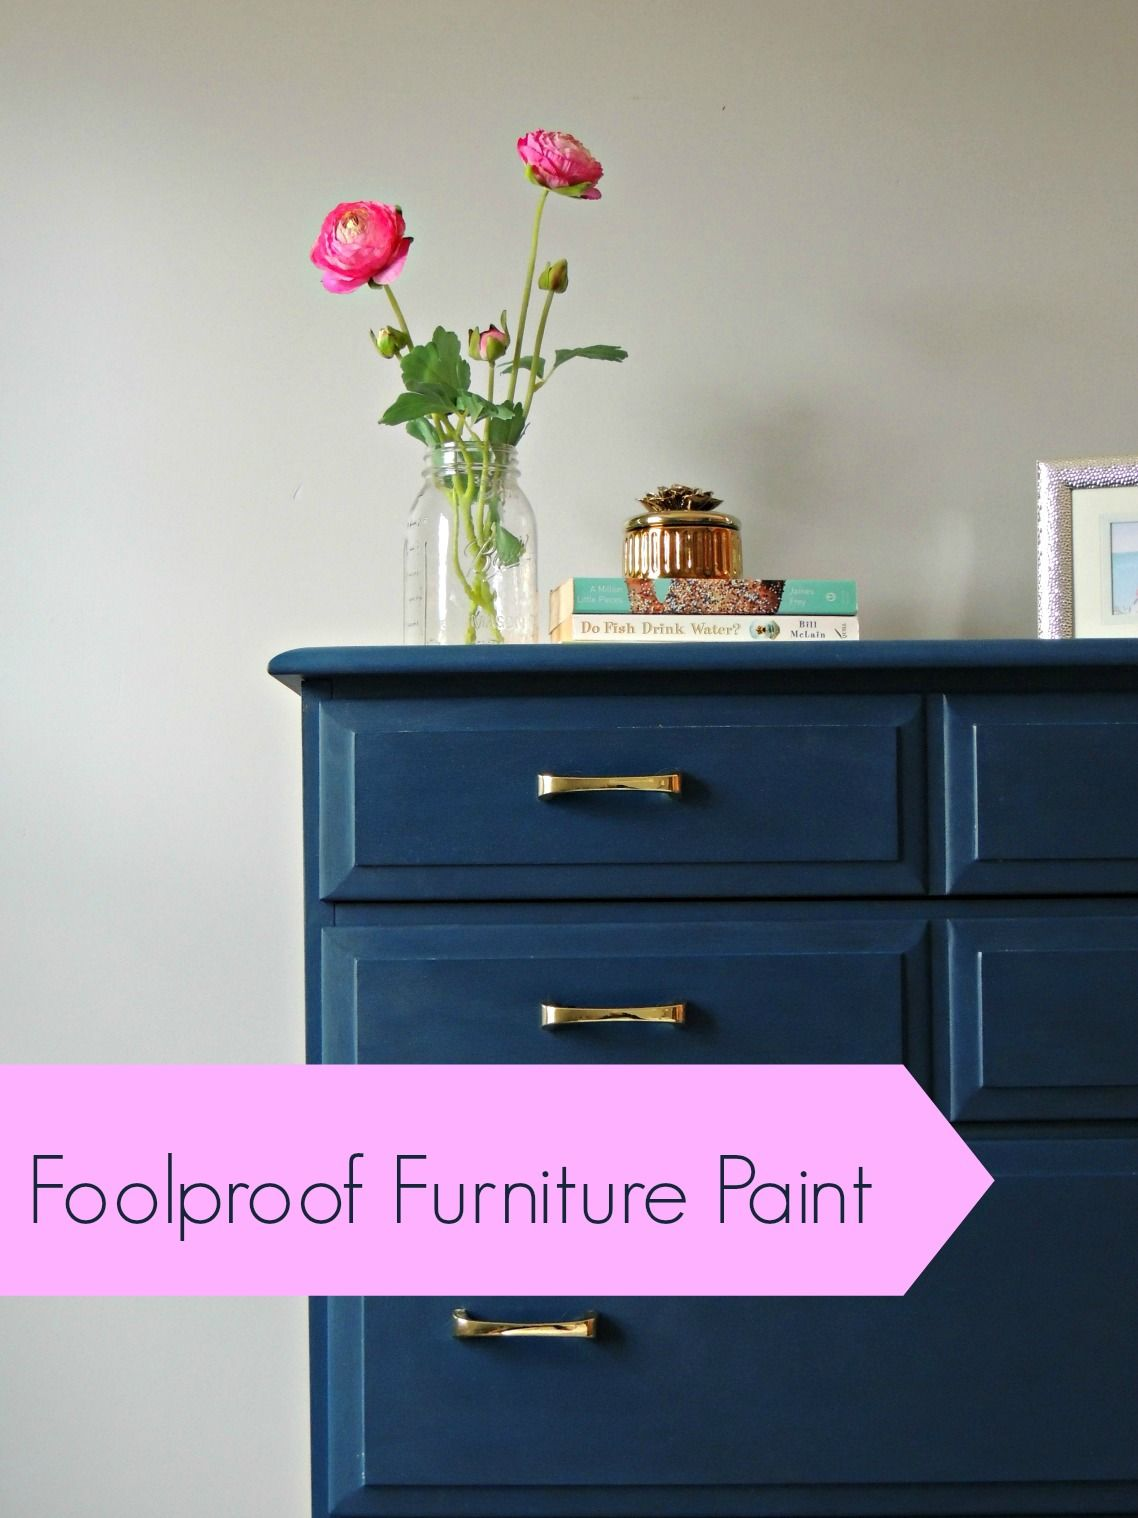 How To Paint Furniture Perfectly And Get Perfect Results I Can Do It All By Myself Pinterest Painted